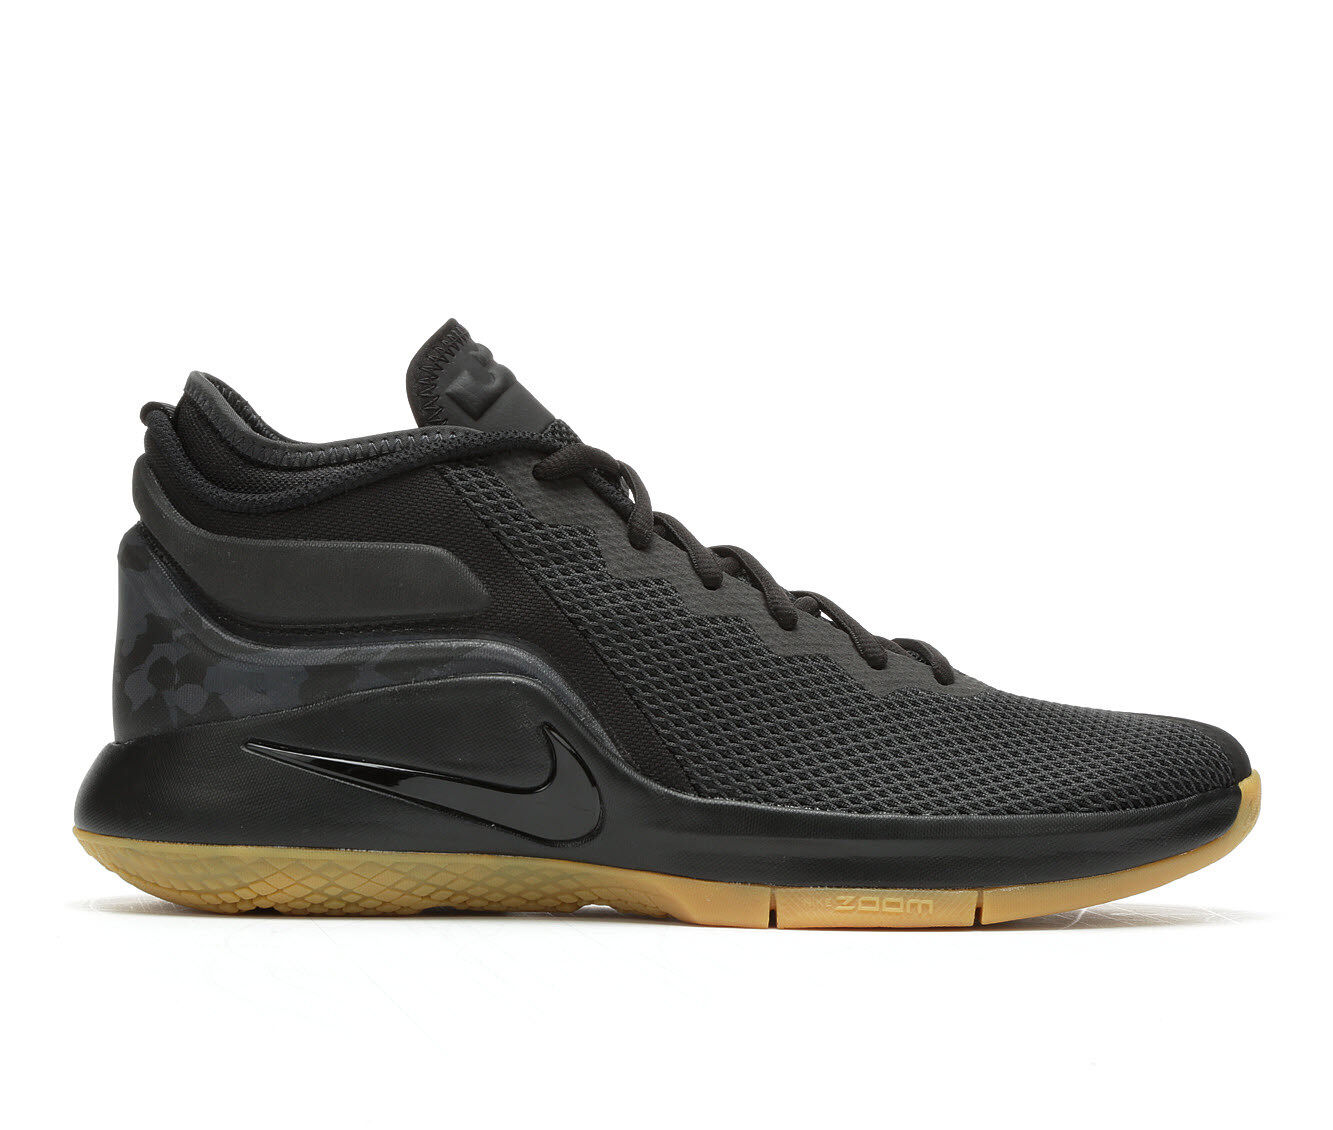 Nike Lebron James Wintness 2 Black Brown Shoes